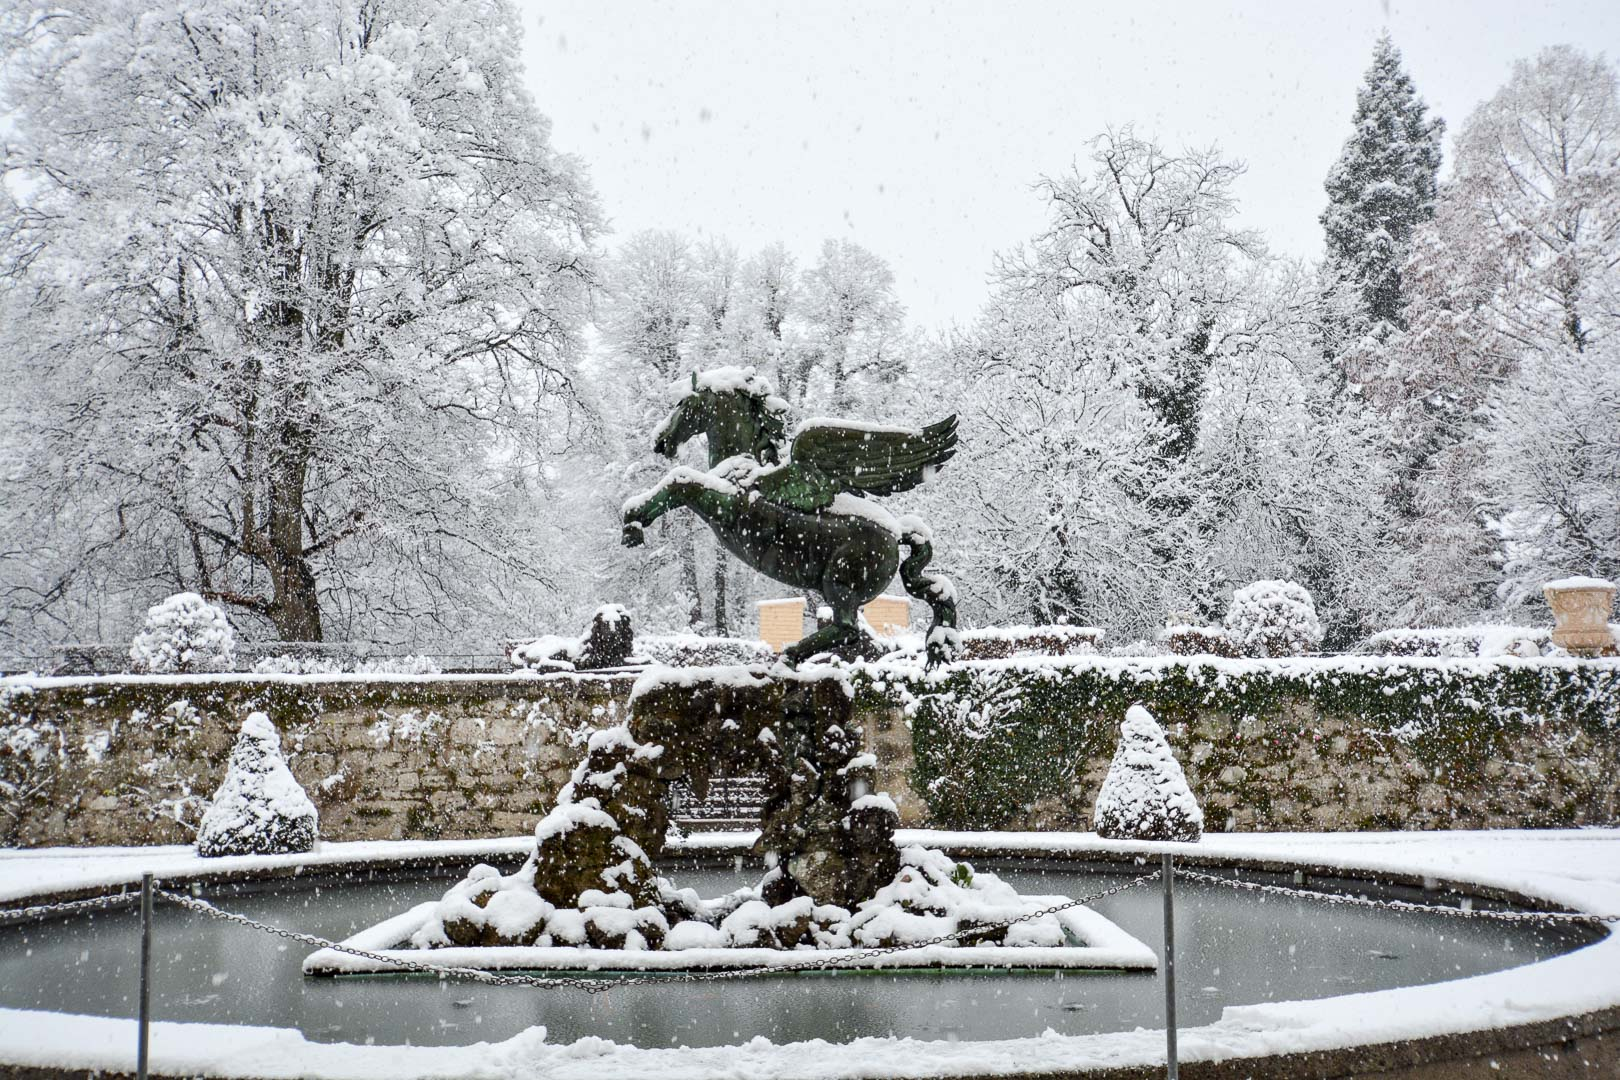 Next time you watch Sound of Music, be on the lookout for this fountain!